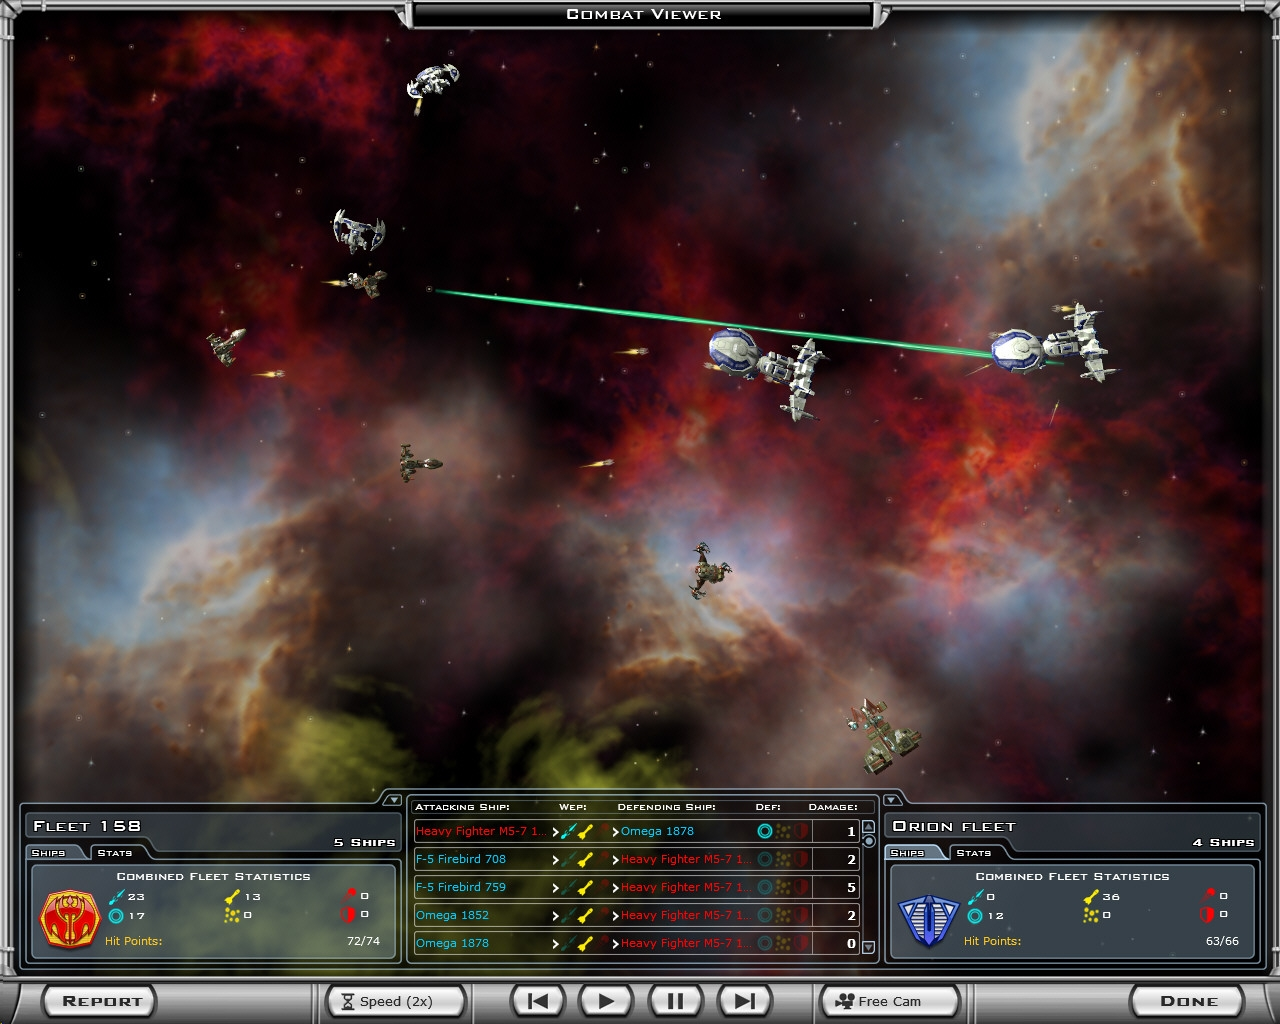 Скриншот из игры Galactic Civilizations 2: Twilight of the Arnor под номером 20